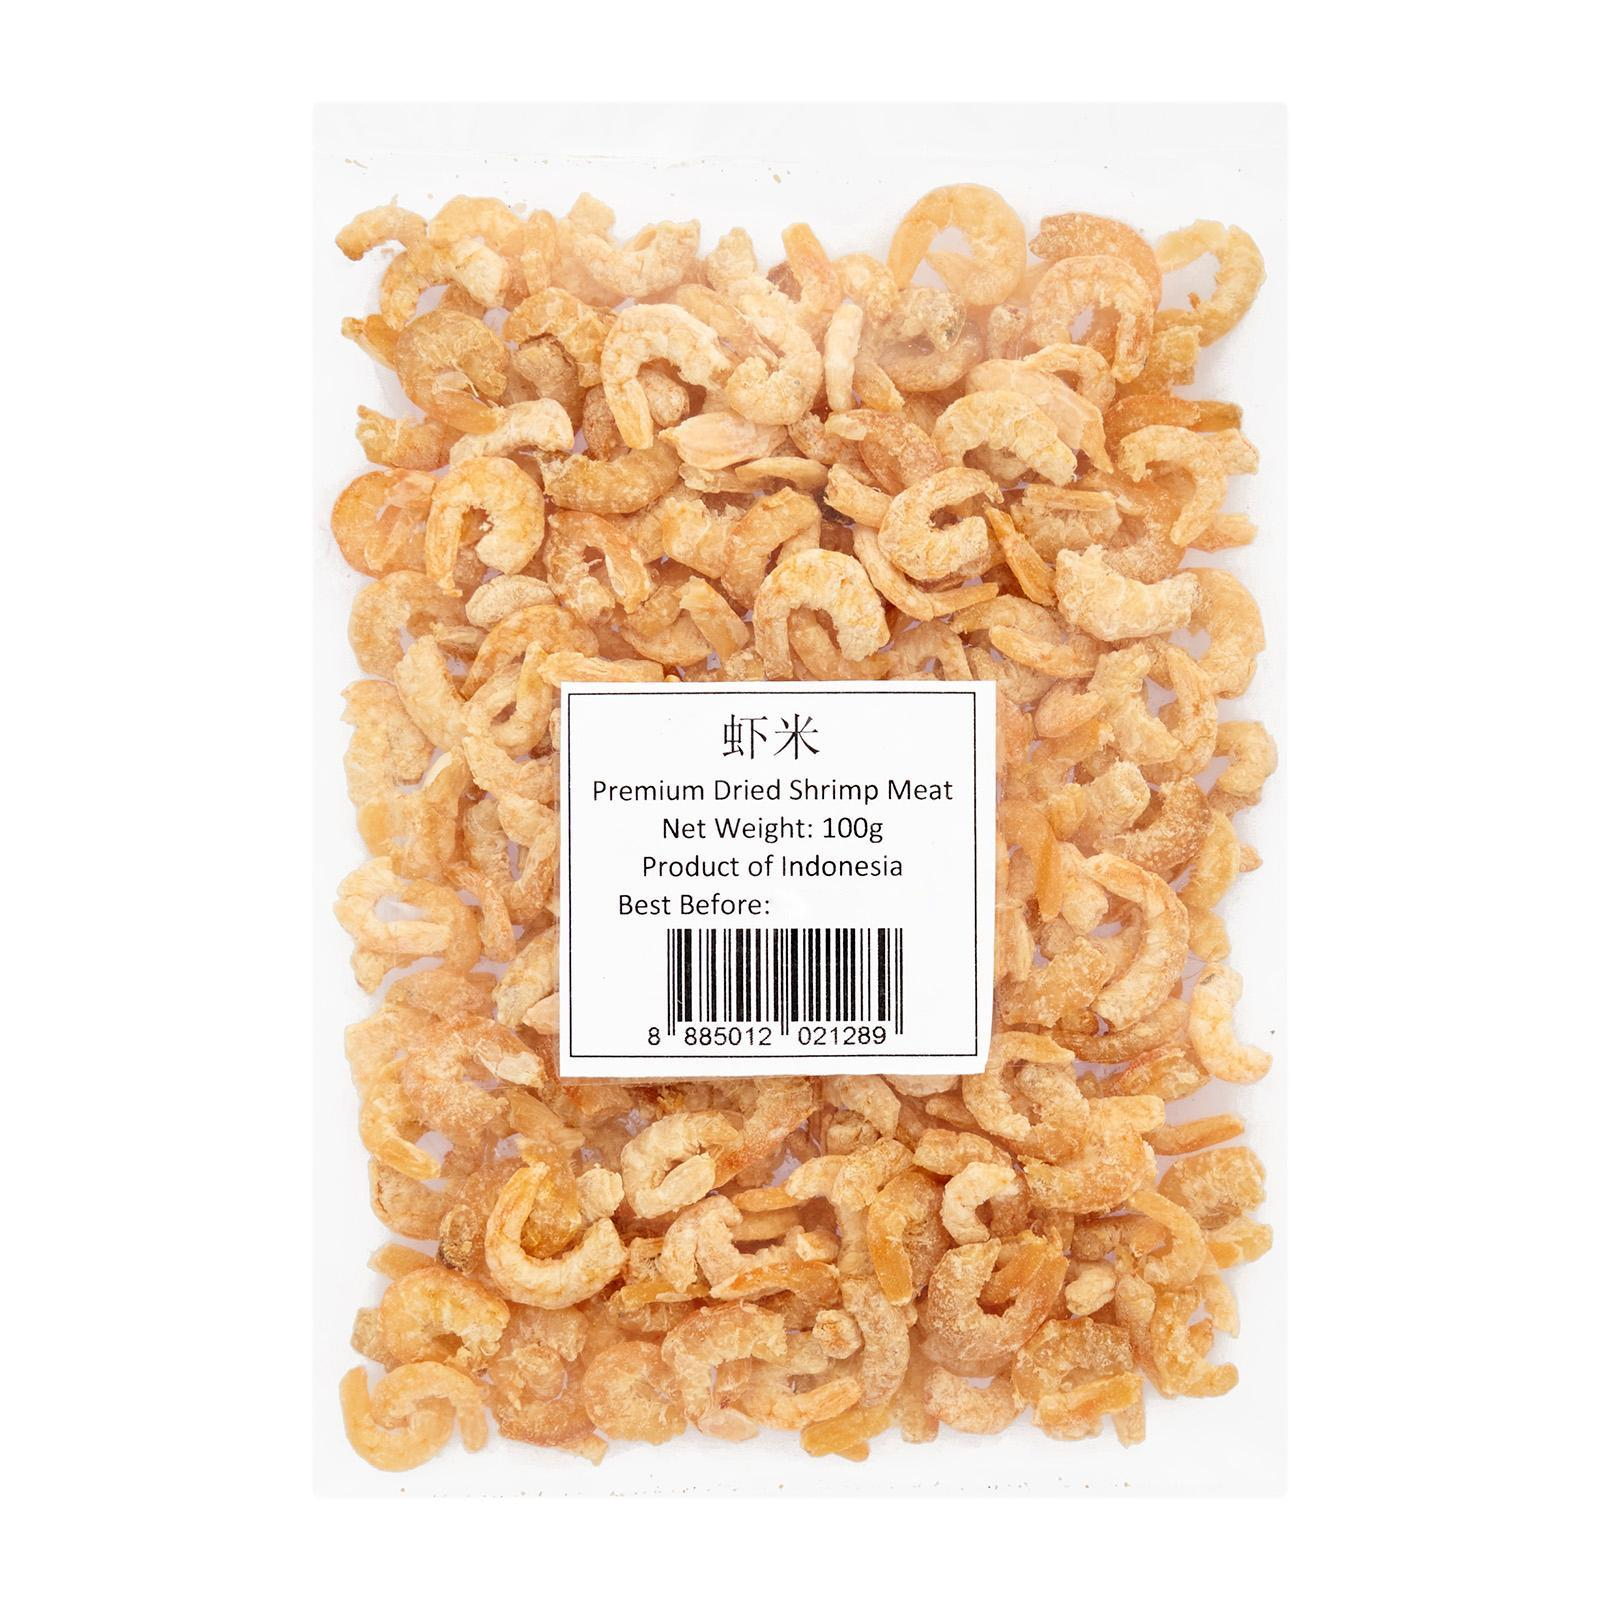 Premium Dried Shrimp Meat - By FOOD SERVICE